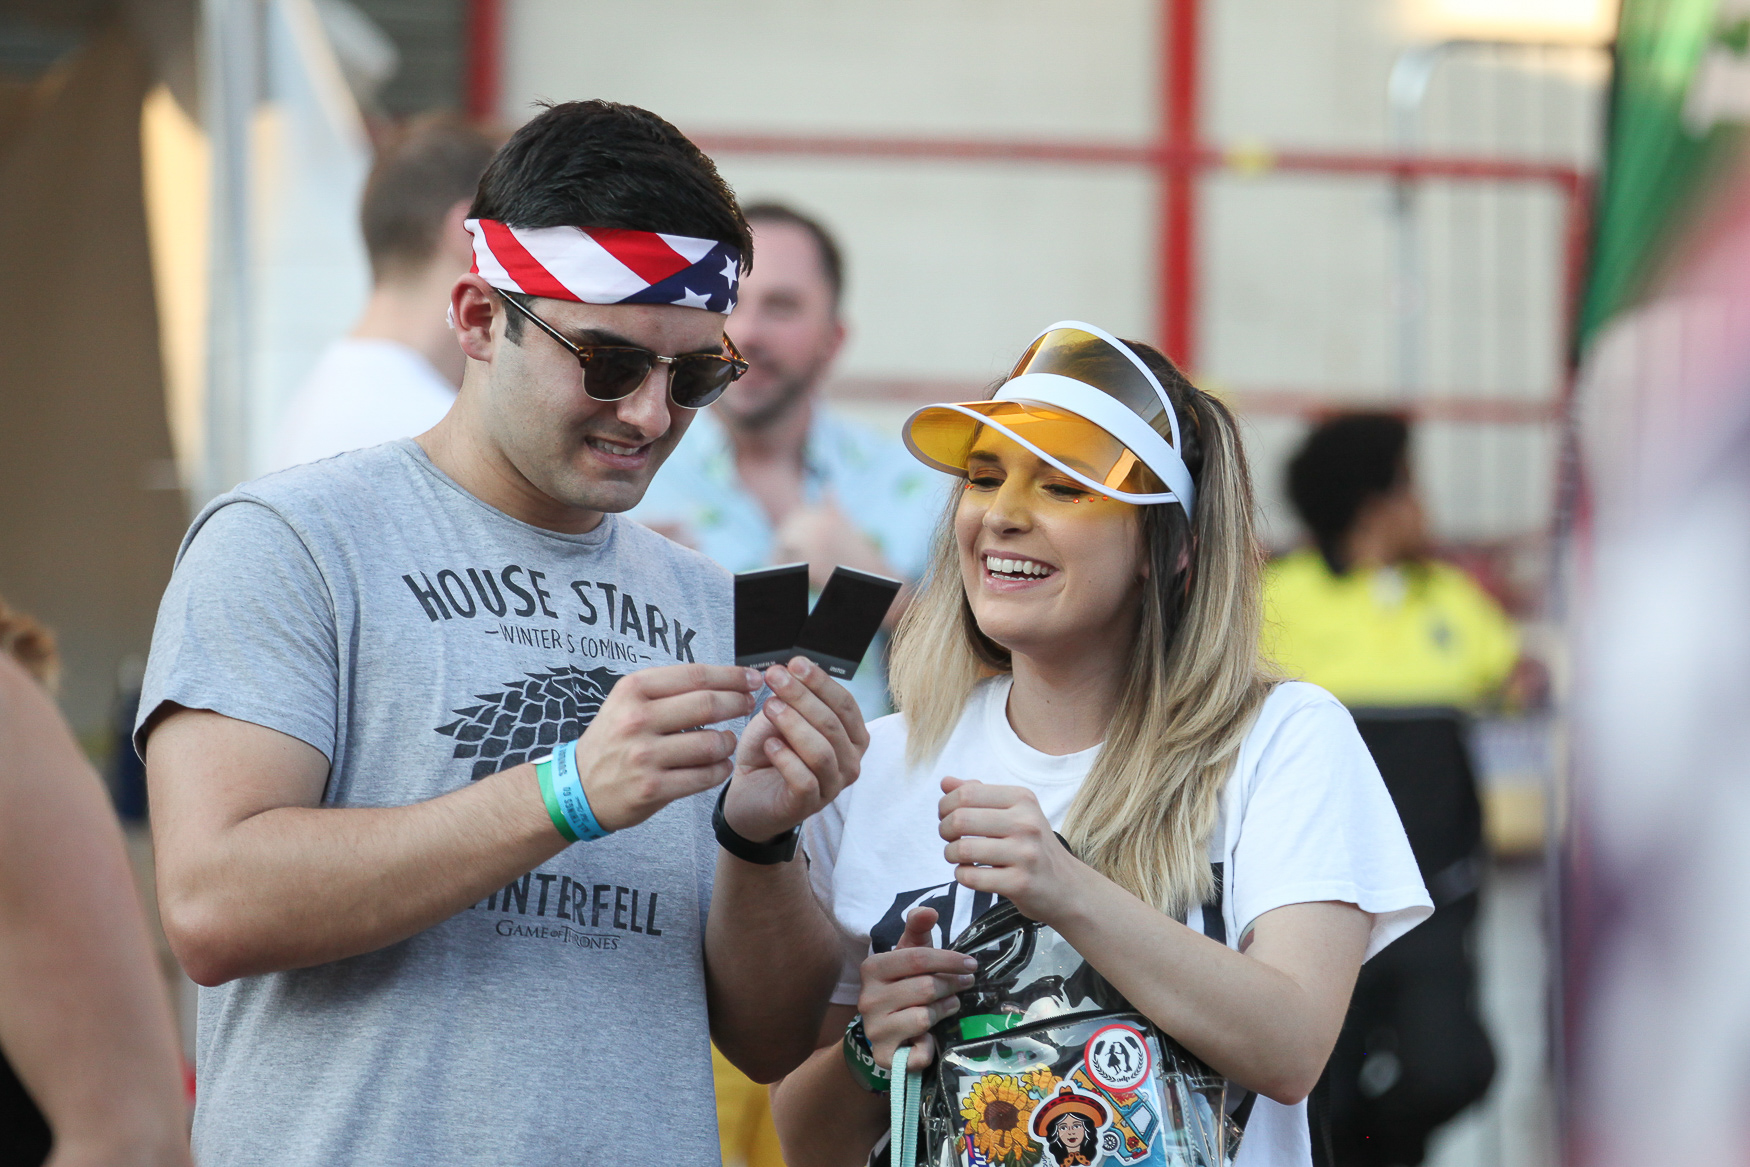 This visor is a fun, easy addition to a festival look.{ } (Amanda Andrade-Rhoades/DC Refined)